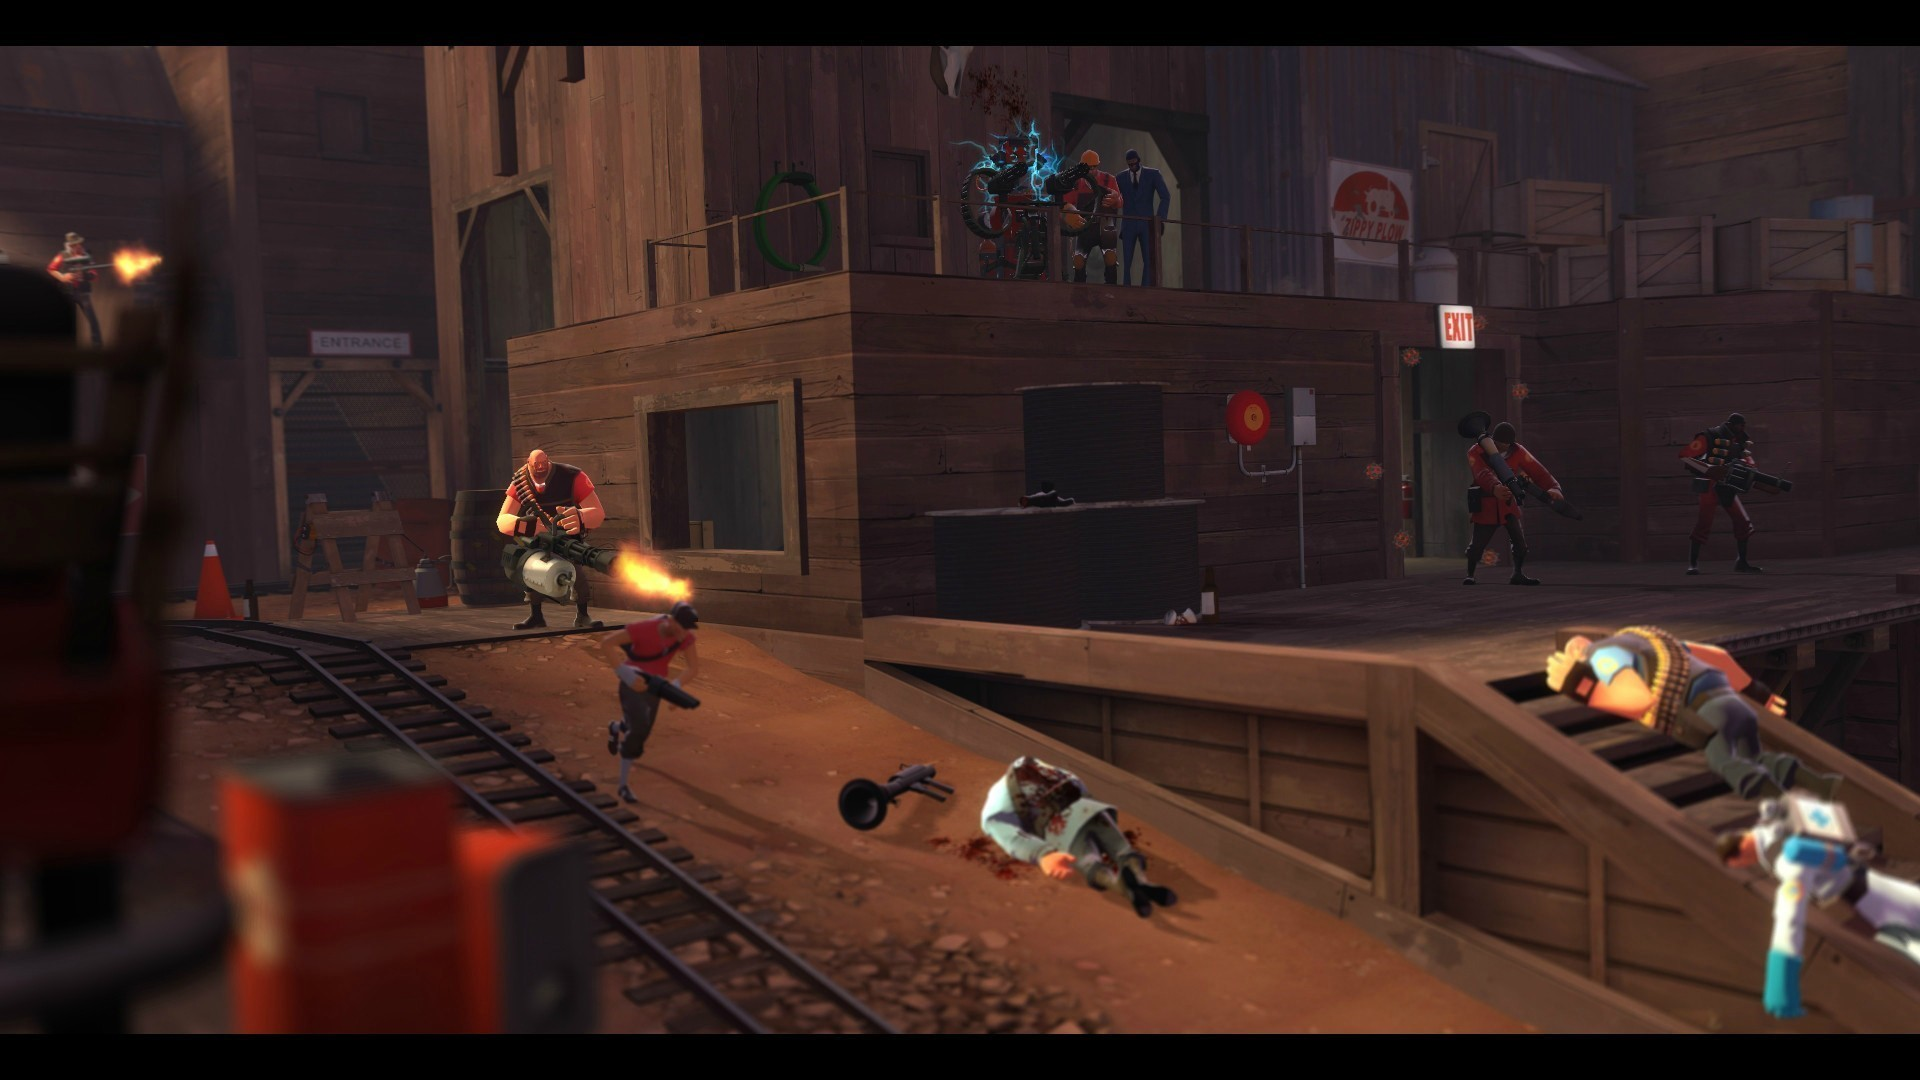 Game Poster, Video Games, Team Fortress 2 Wallpaper 1920x1080 px